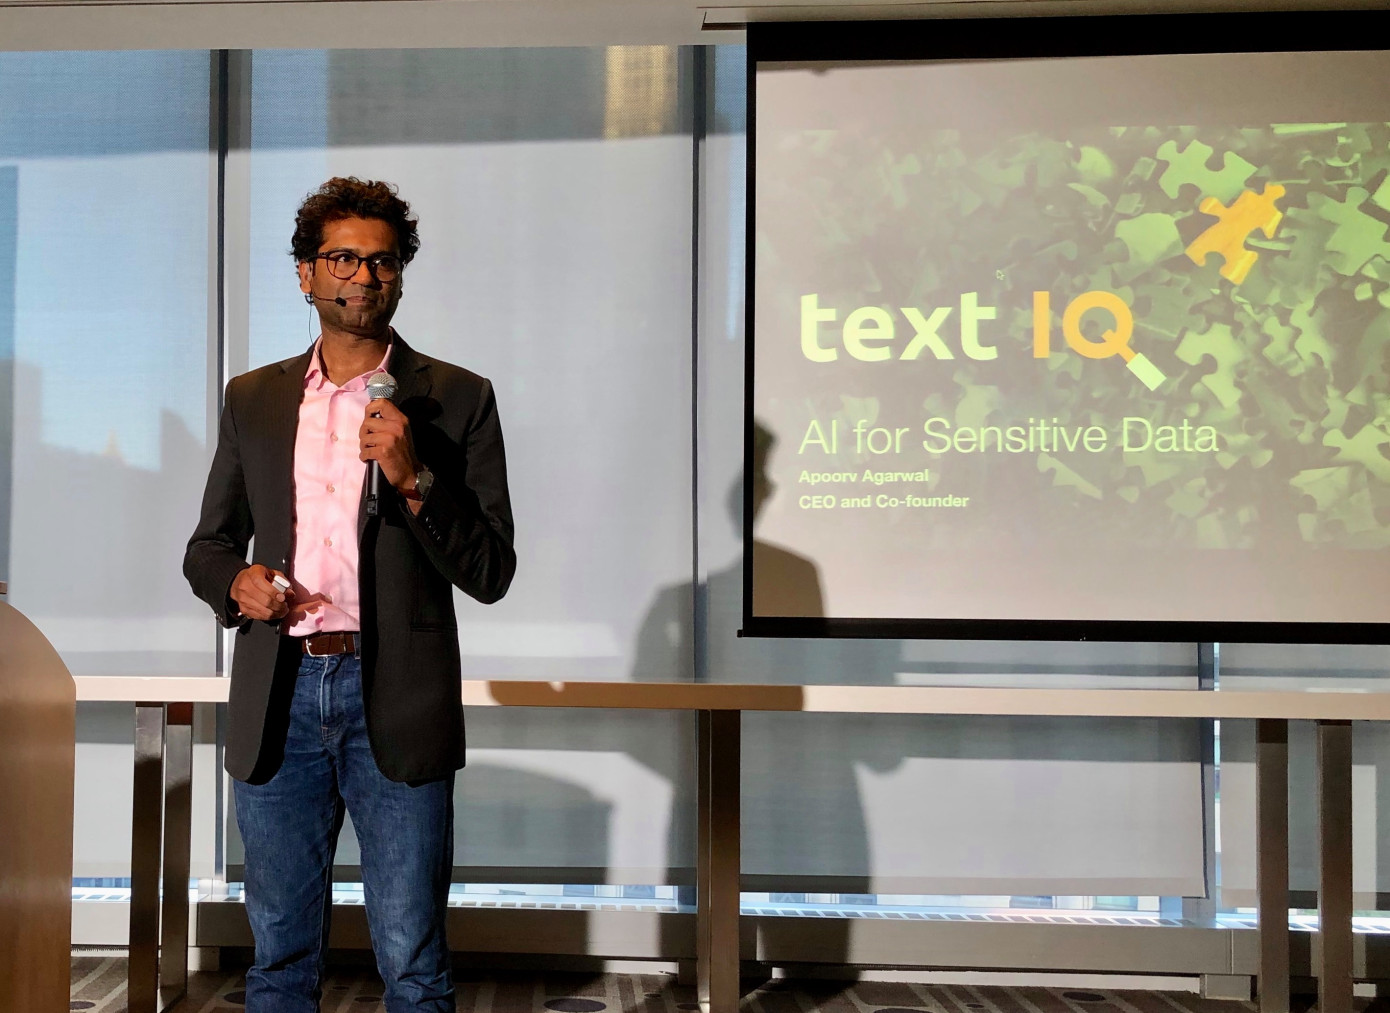 TextIQ raises $12.6 million Series A from Firstmark Capital & Sierra Ventures to use AI for understanding & protecting data. - TechcrunchJune 2019